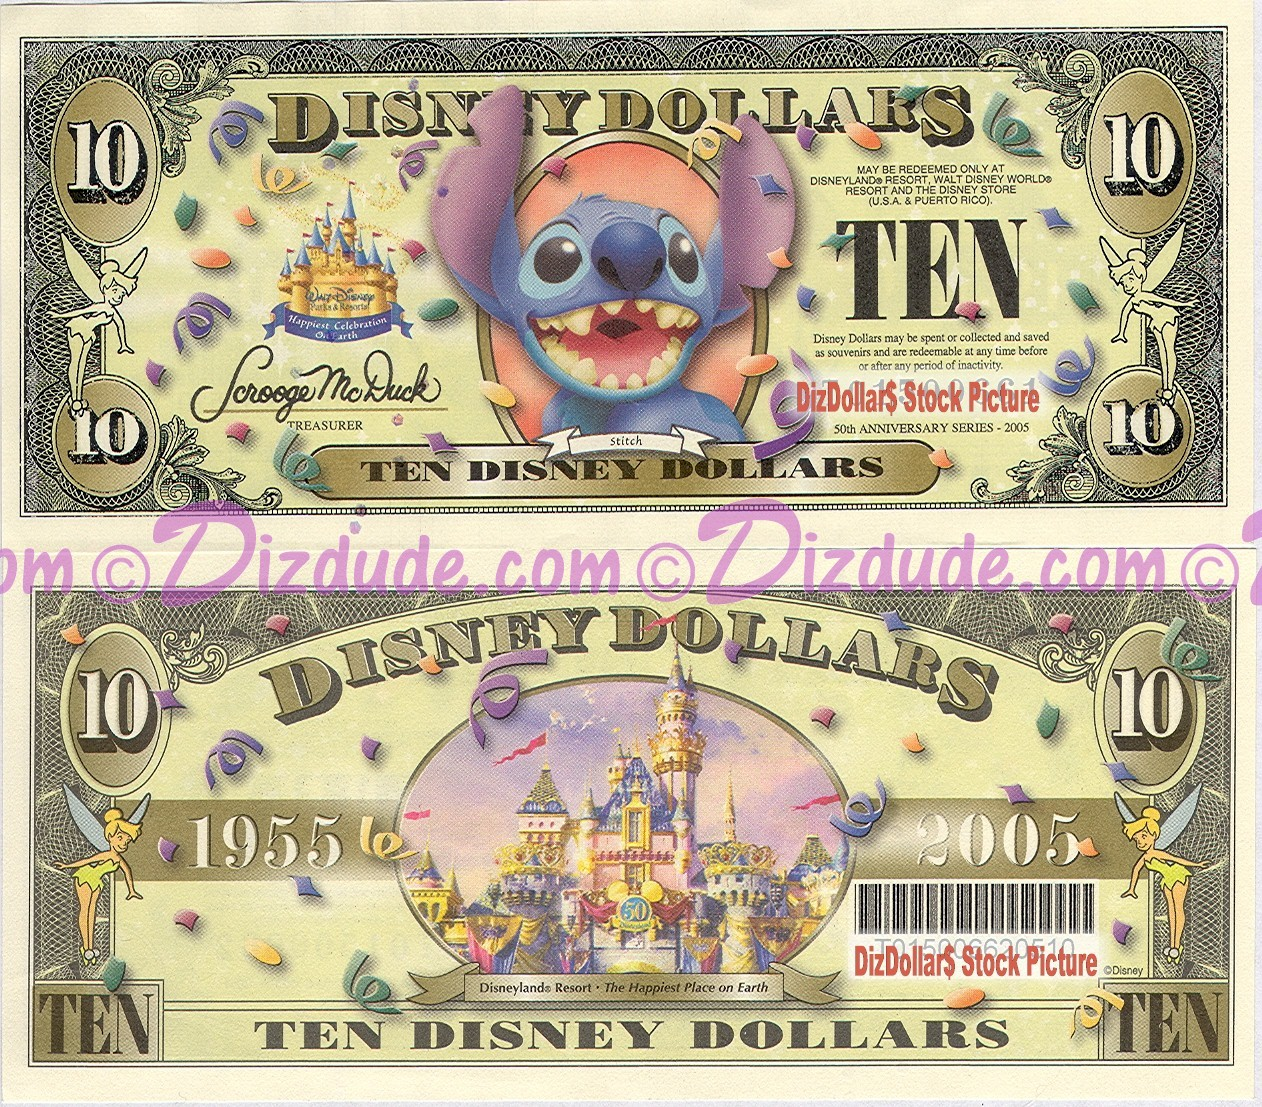 """2005 """"D"""" $10 UNC Disney Dollar - Stitch front with Disneyland Sleeping Beauty's Castle and barcode on back - """"D"""" 50th Anniversary Series from Disney World ~ © DIZDUDE.com"""